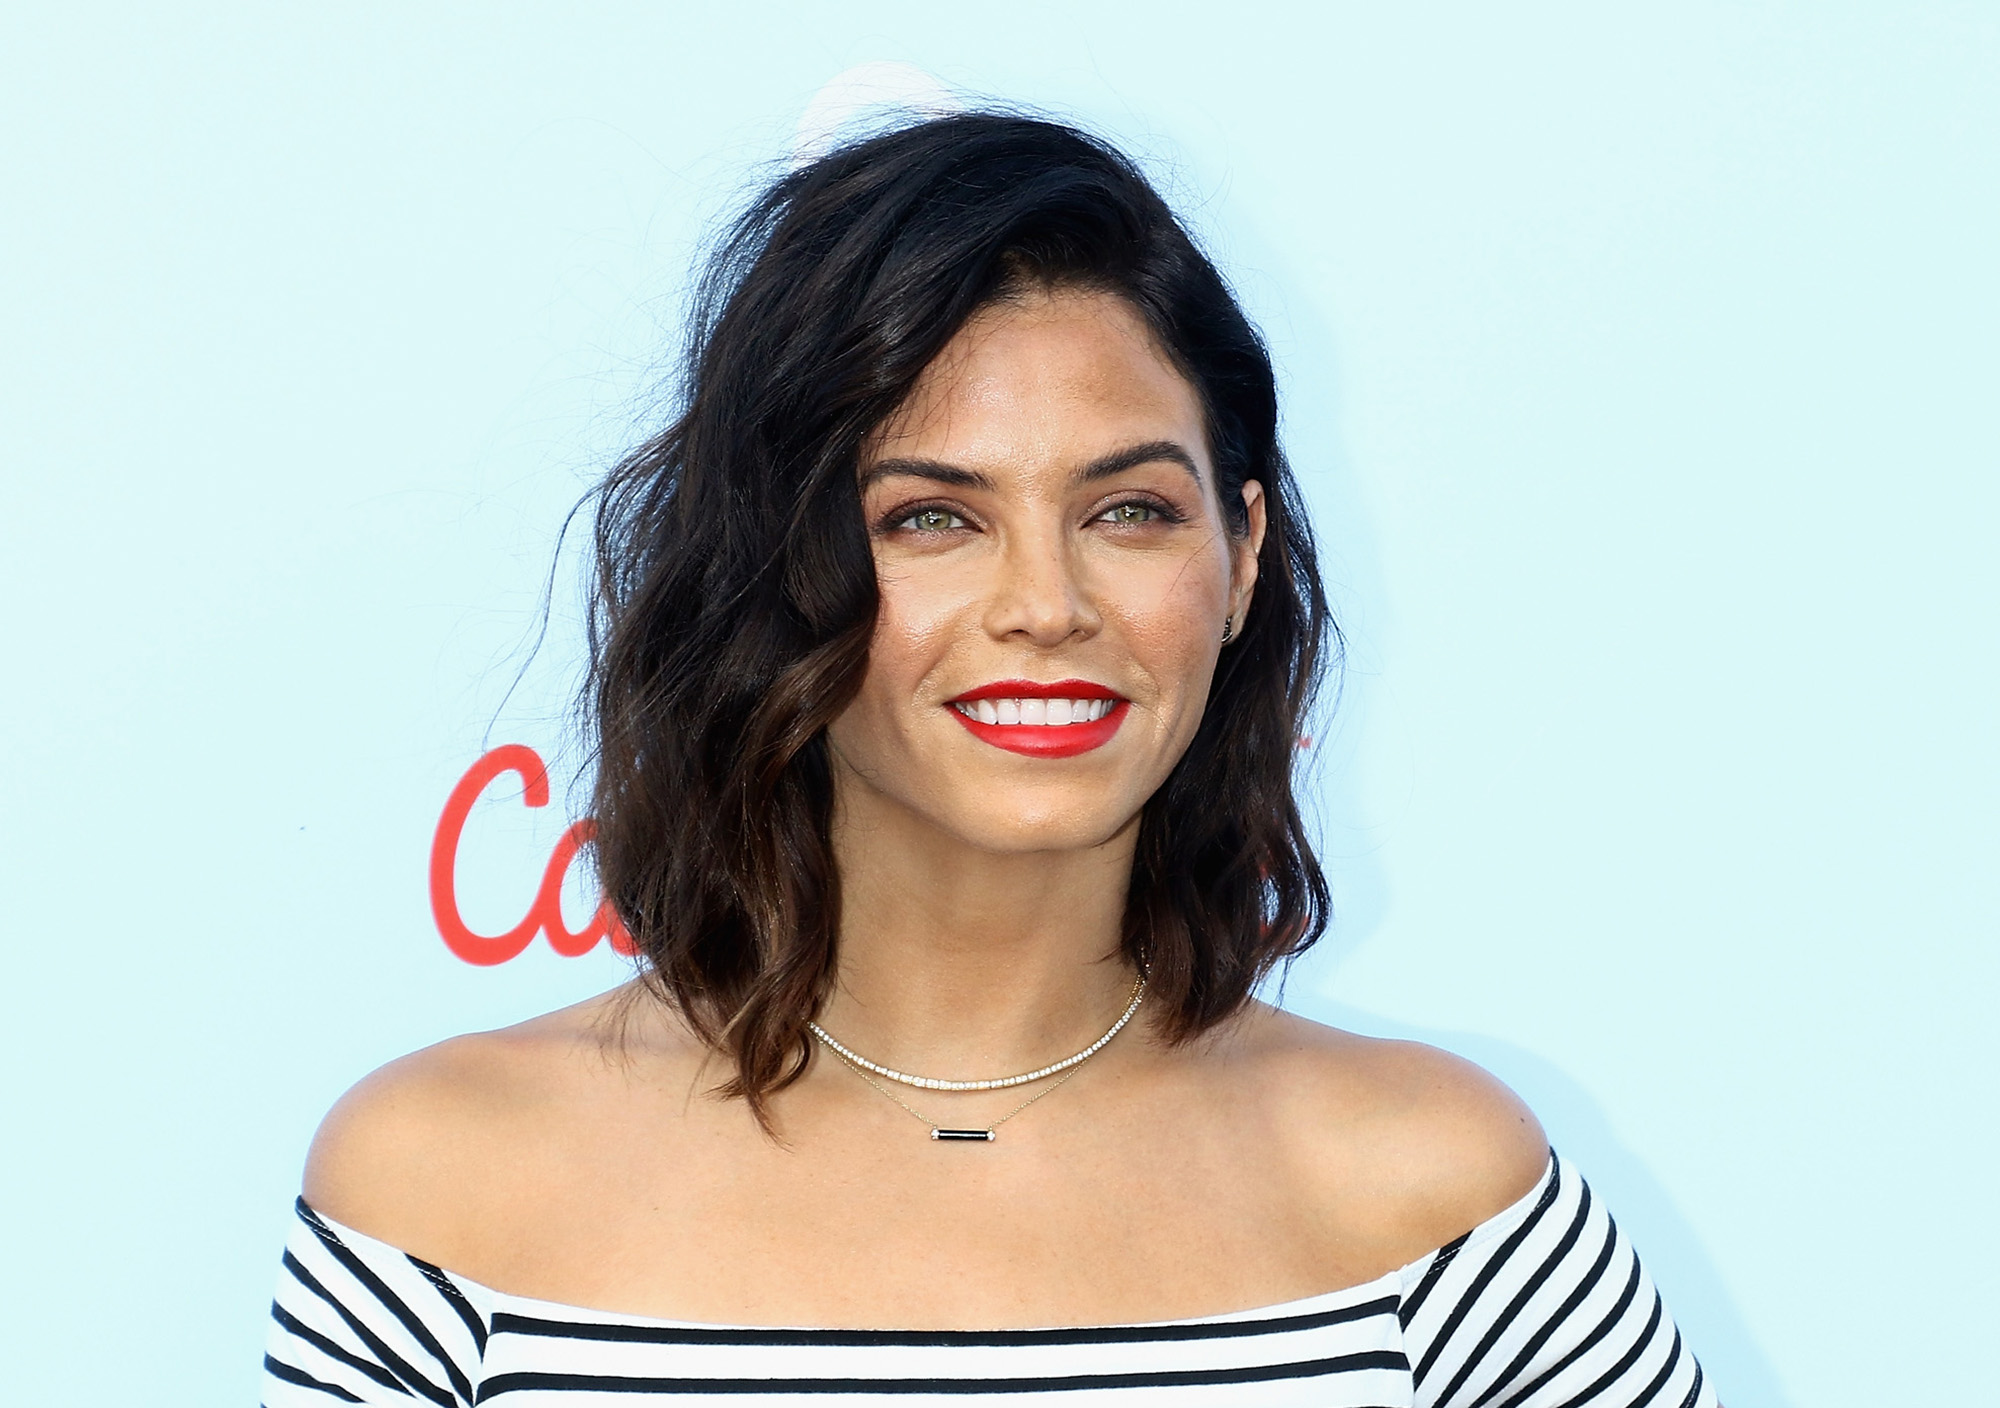 Jenna Dewan Tatum attends the Target Launch of Cat and Jack brand at Brooklyn Bridge Park on July 21, 2016 in New York City.  (Photo by Jim Spellman/WireImage)